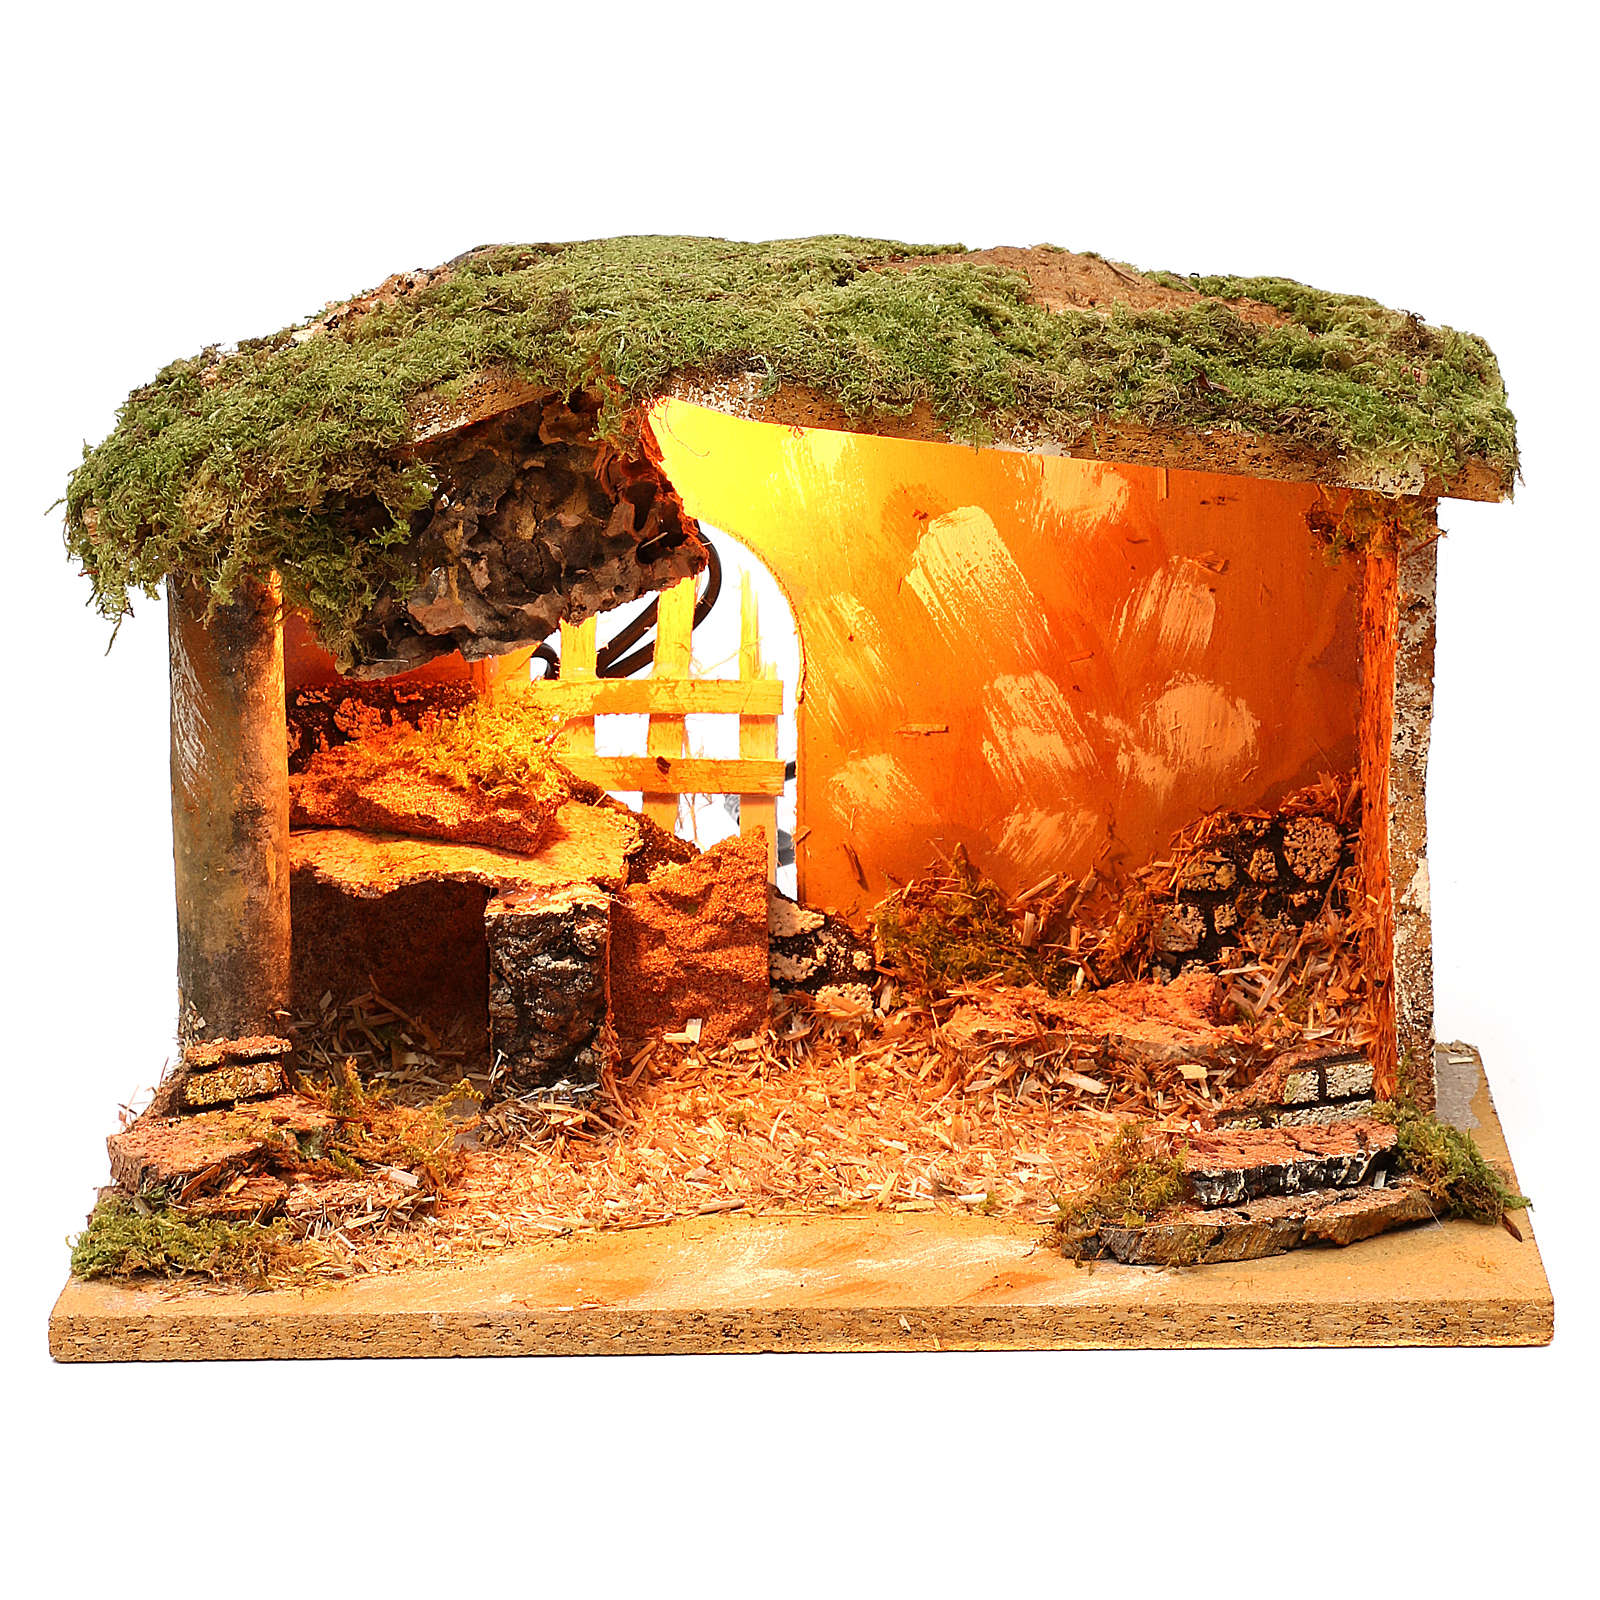 Stable with cork feeder and lighting 20x30x20 cm for Nativity scenes of 12 cm 4